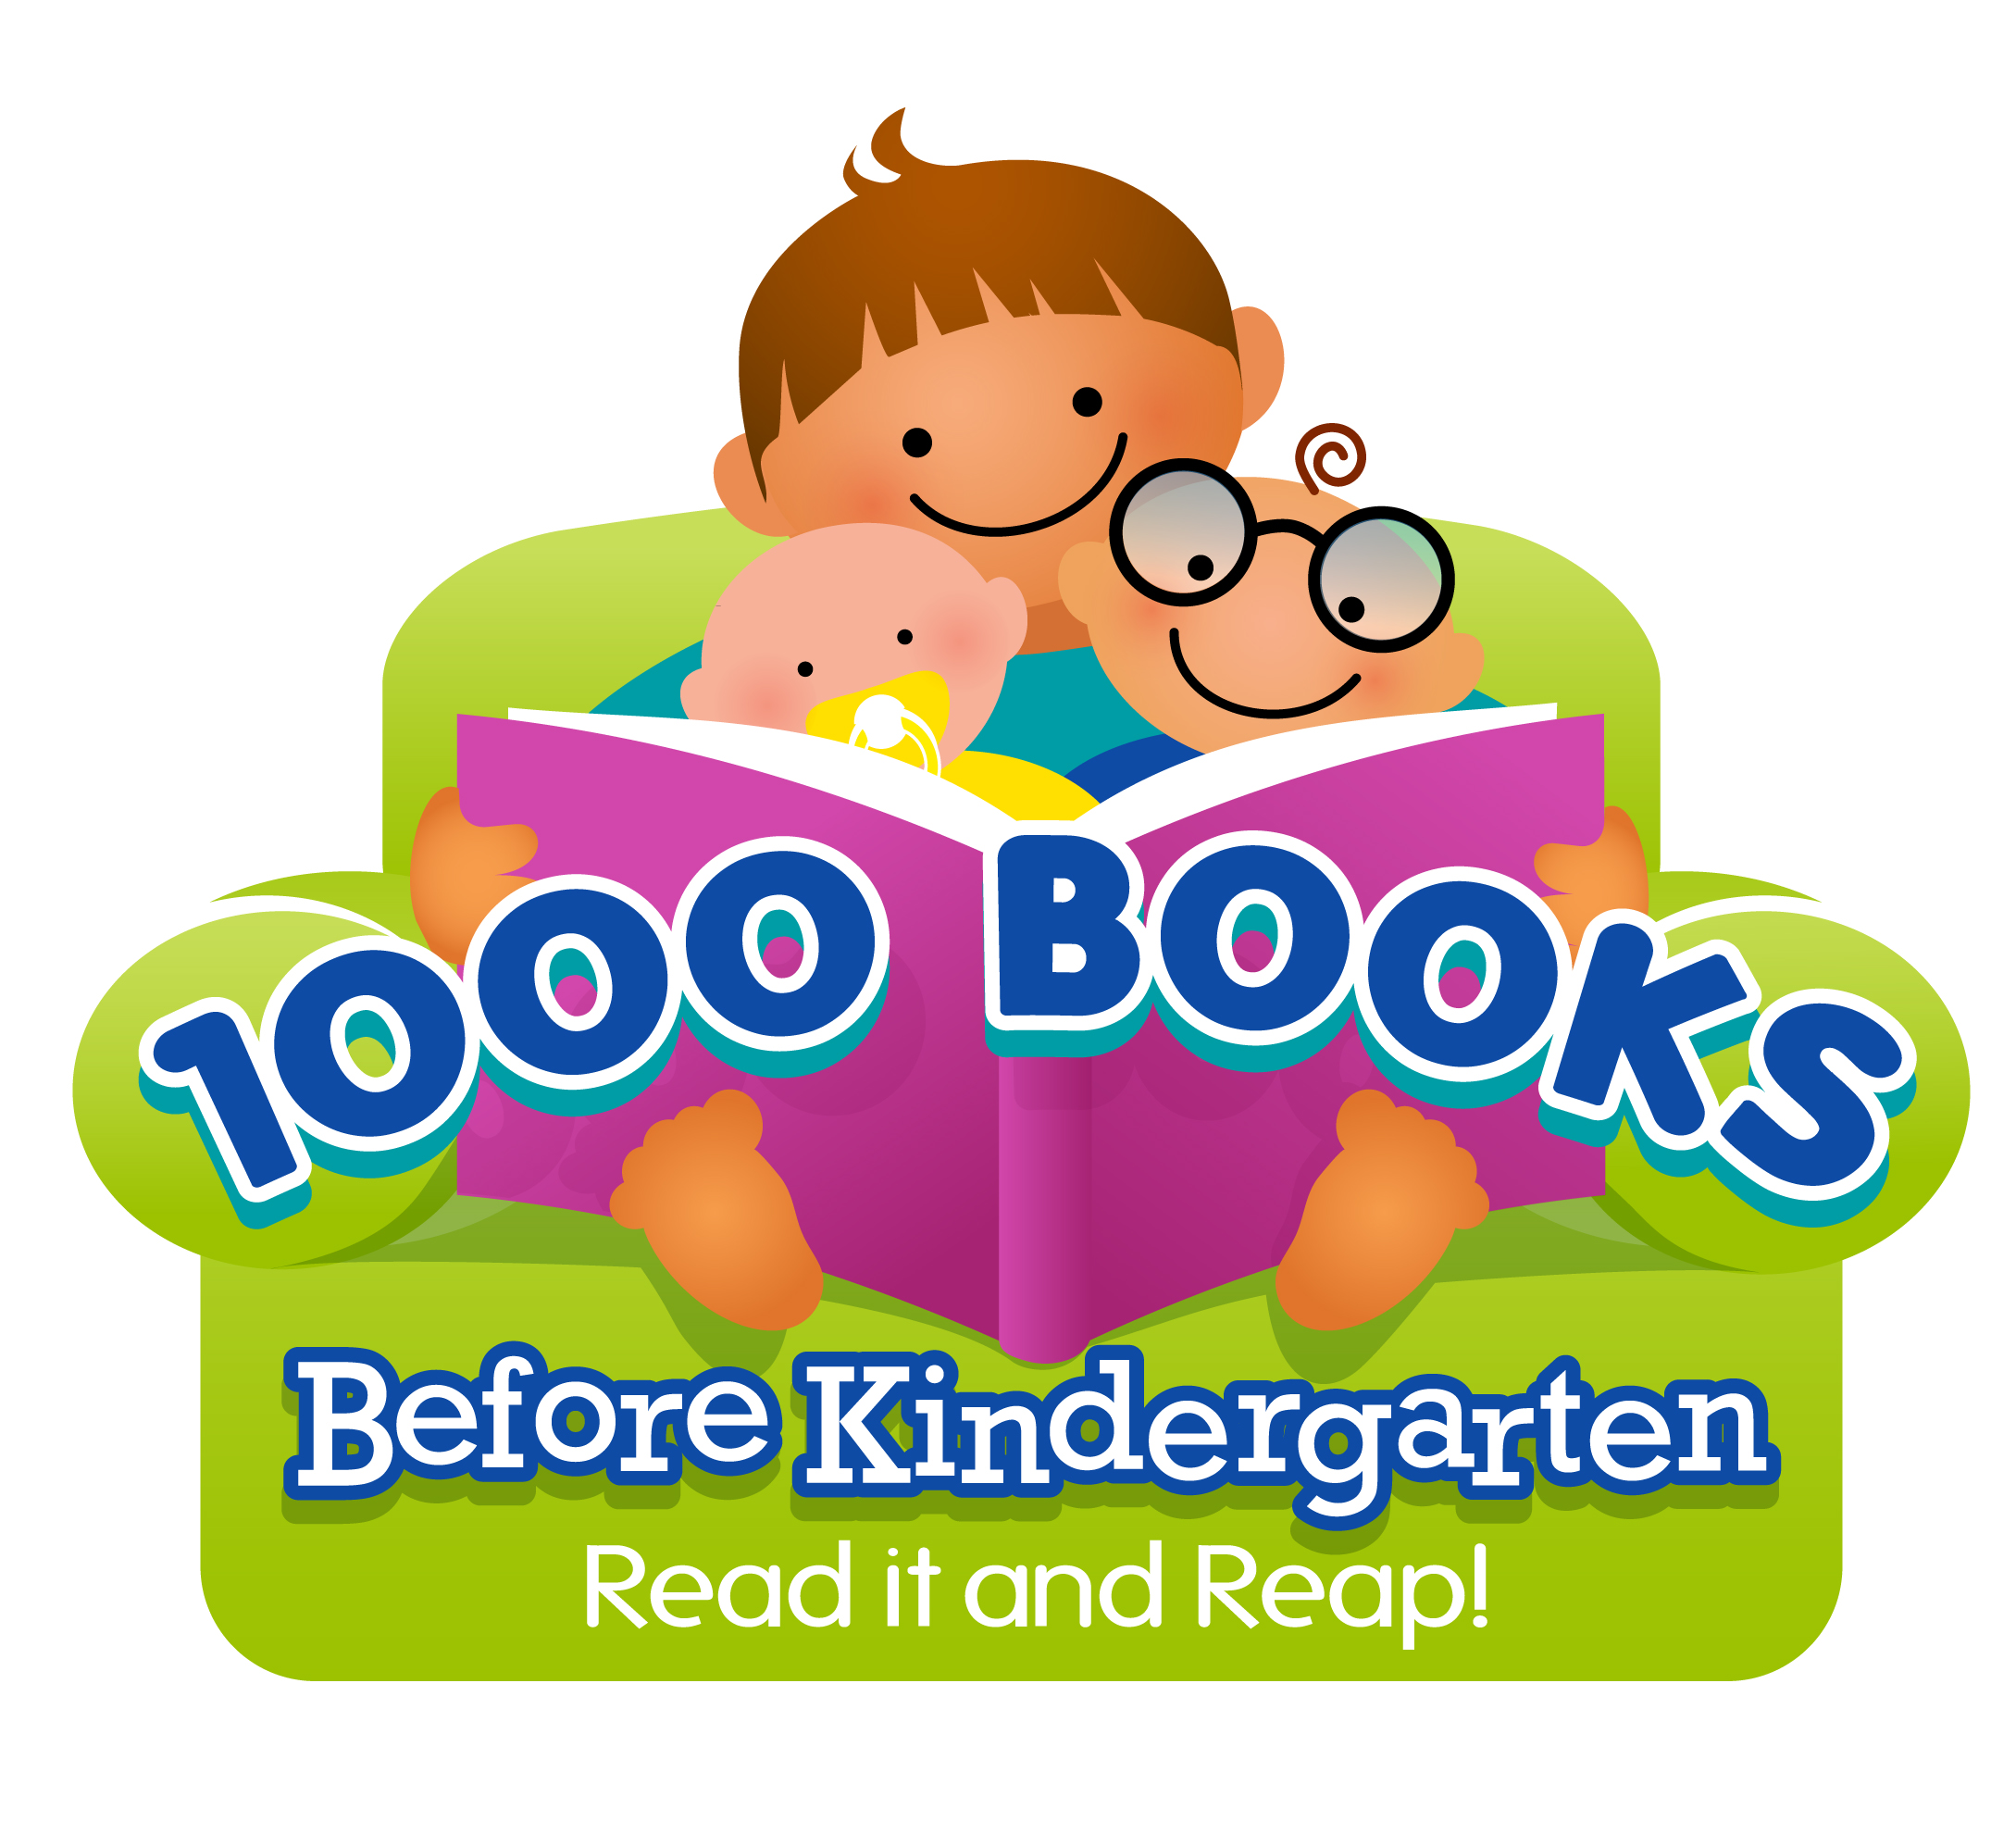 Image result for 1000 books before kindergarten